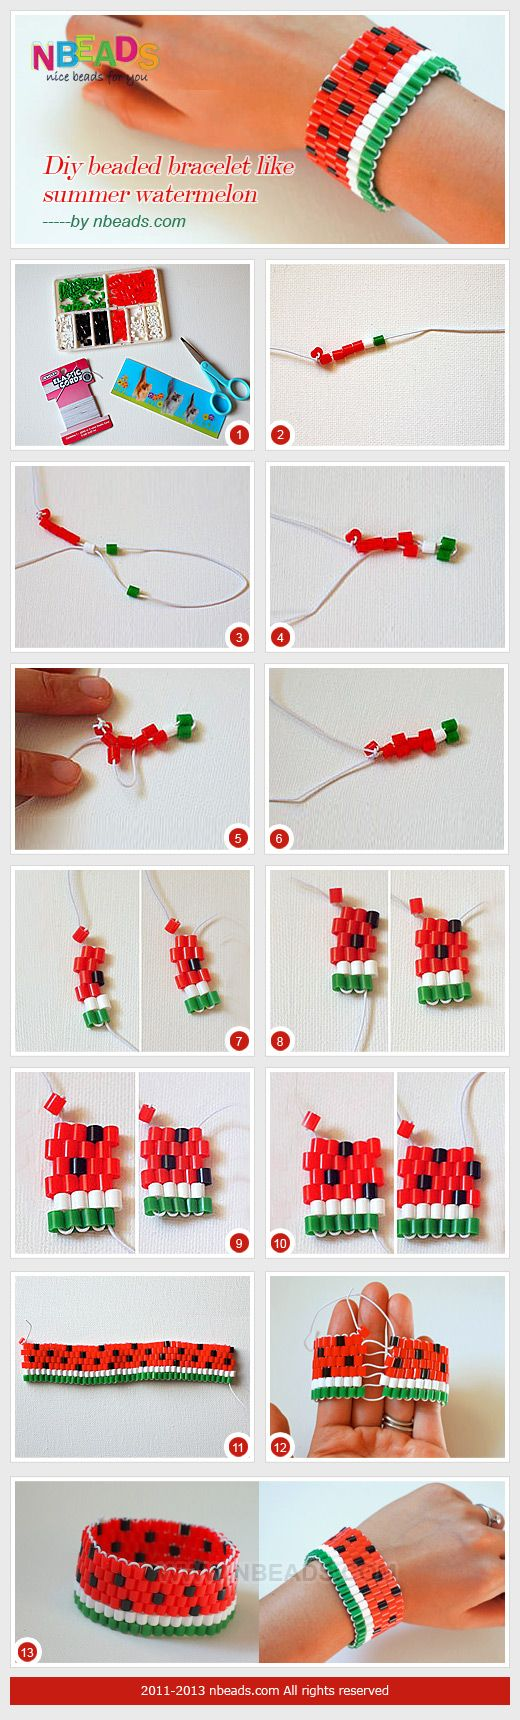 diy beaded bracelet like summer watermelon